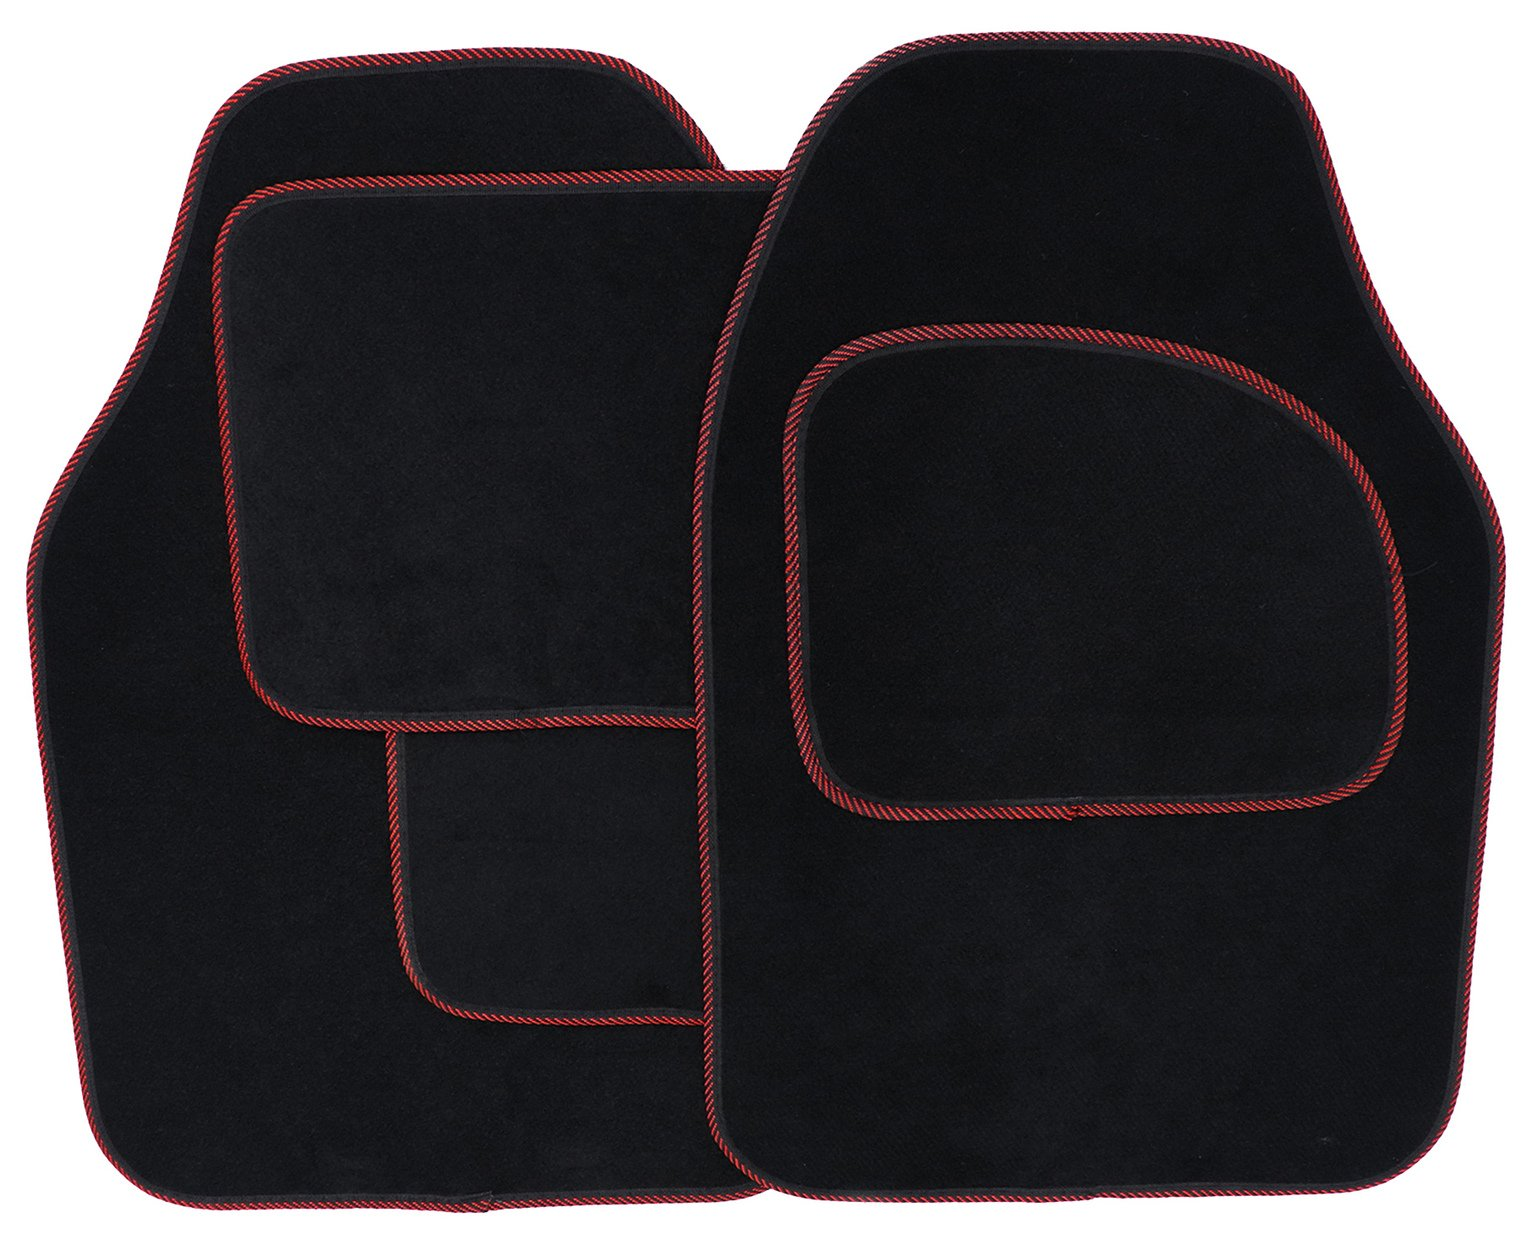 Set of 4 Car Mats - Black with Red Trim